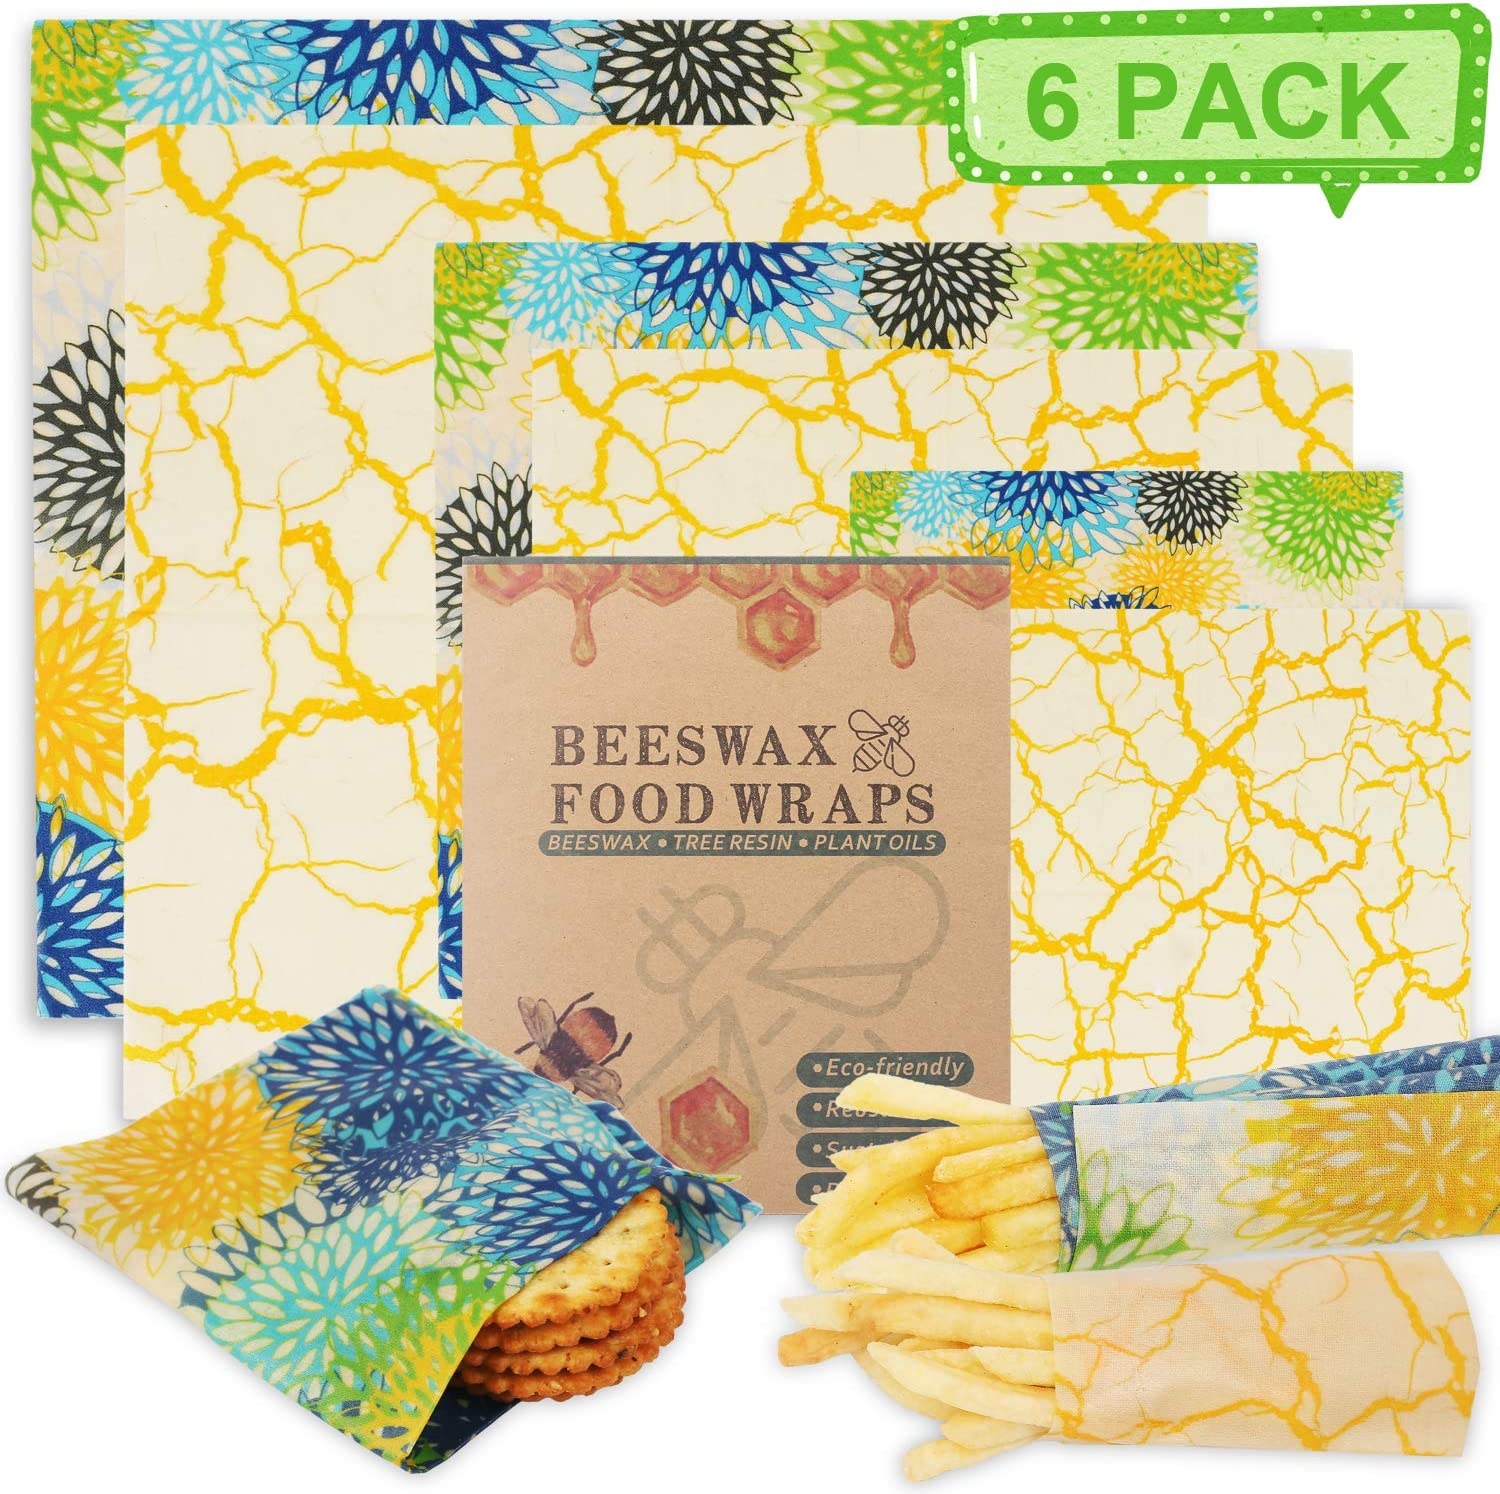 Reusable Beeswax Wrap Bees wax Food Storage Wraps – 6 Packs Eco Friendly Cotton Wrapping(Green)